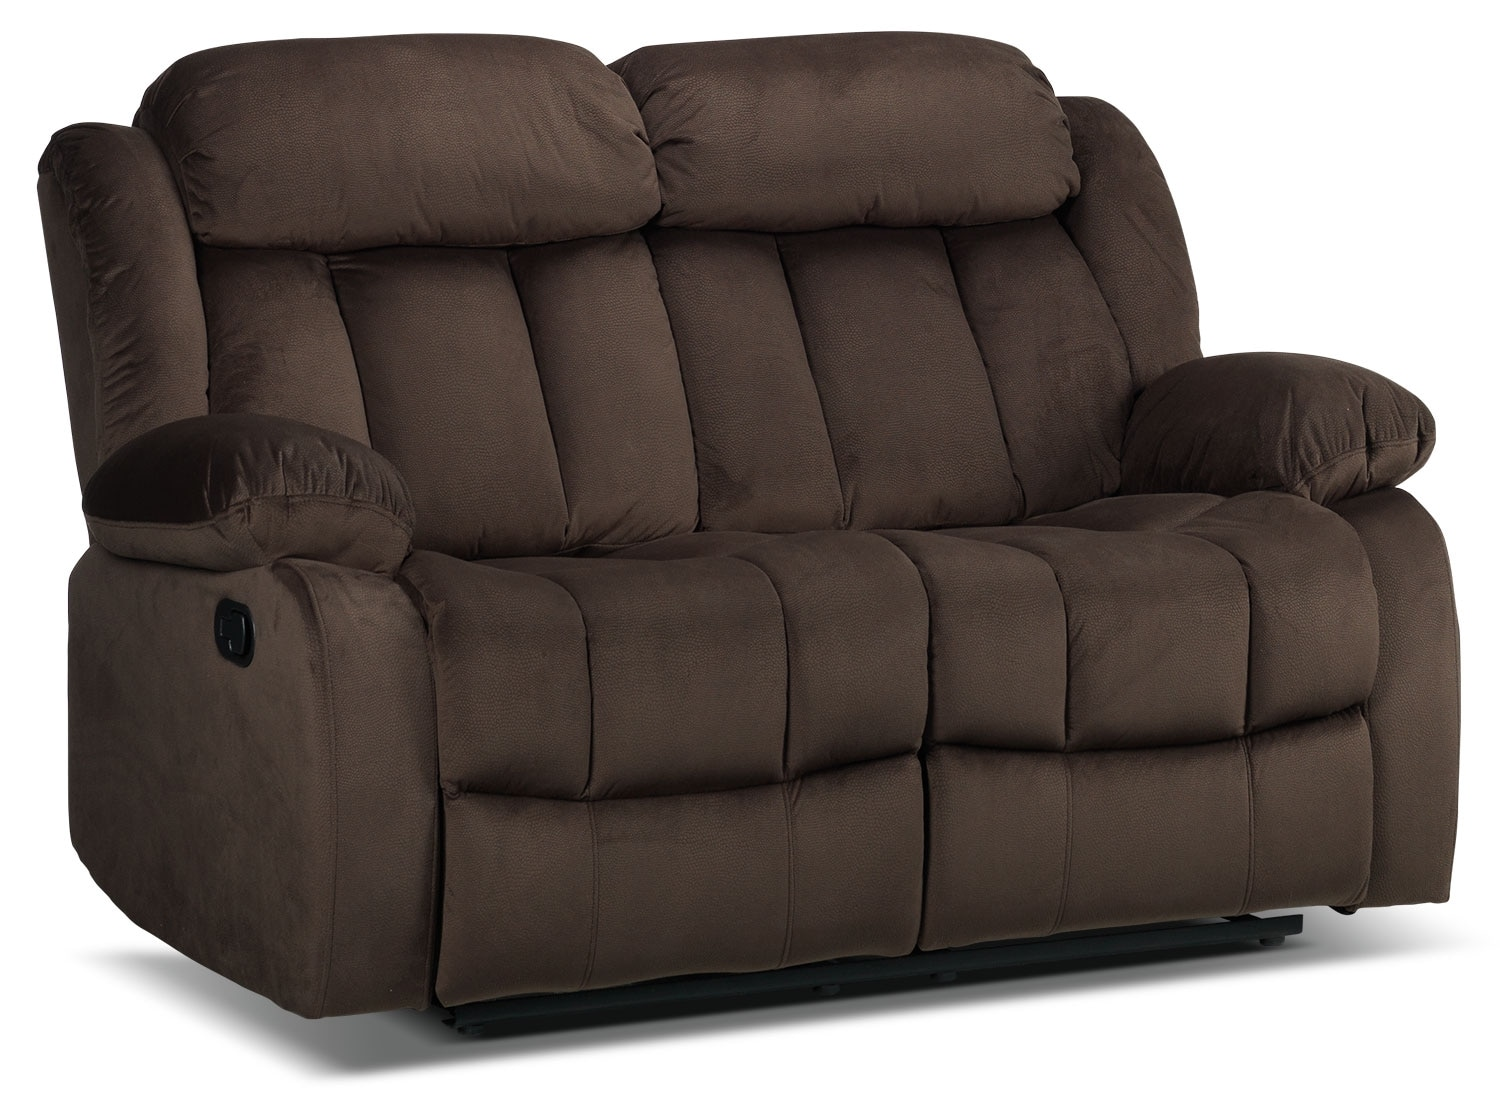 Living Room Furniture - Alabama Reclining Loveseat